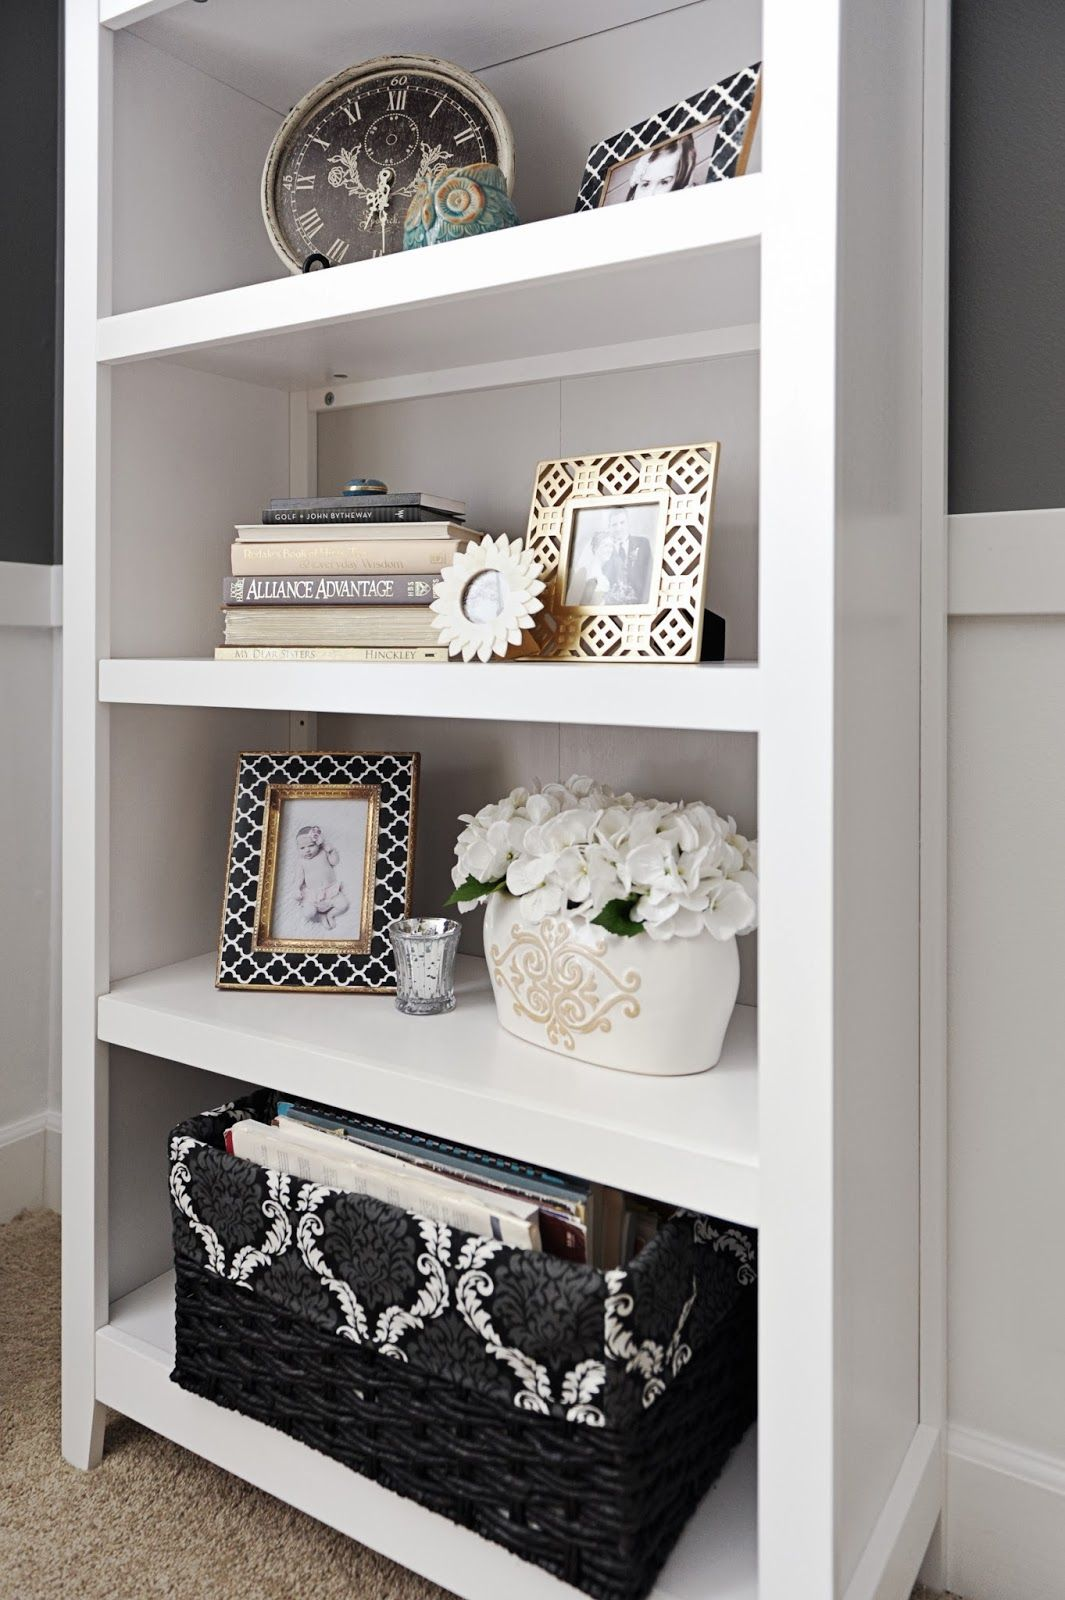 Studio 7 Interior Design: How to Stage a Bookcase | House Ideas ...